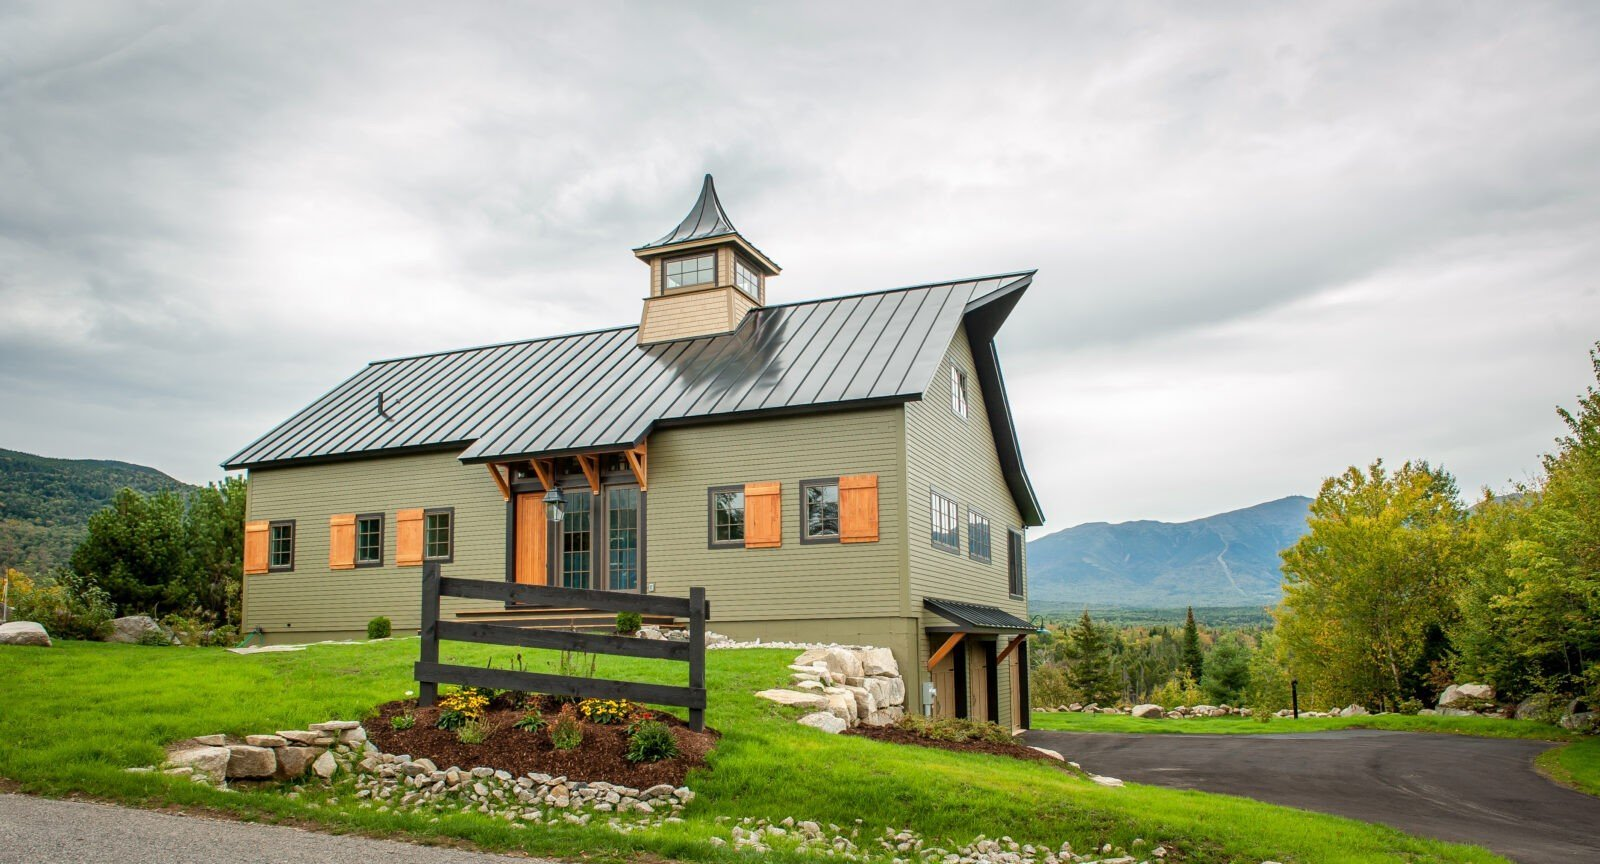 Top notch barn home plans from the ybh design team for 2 story barn house